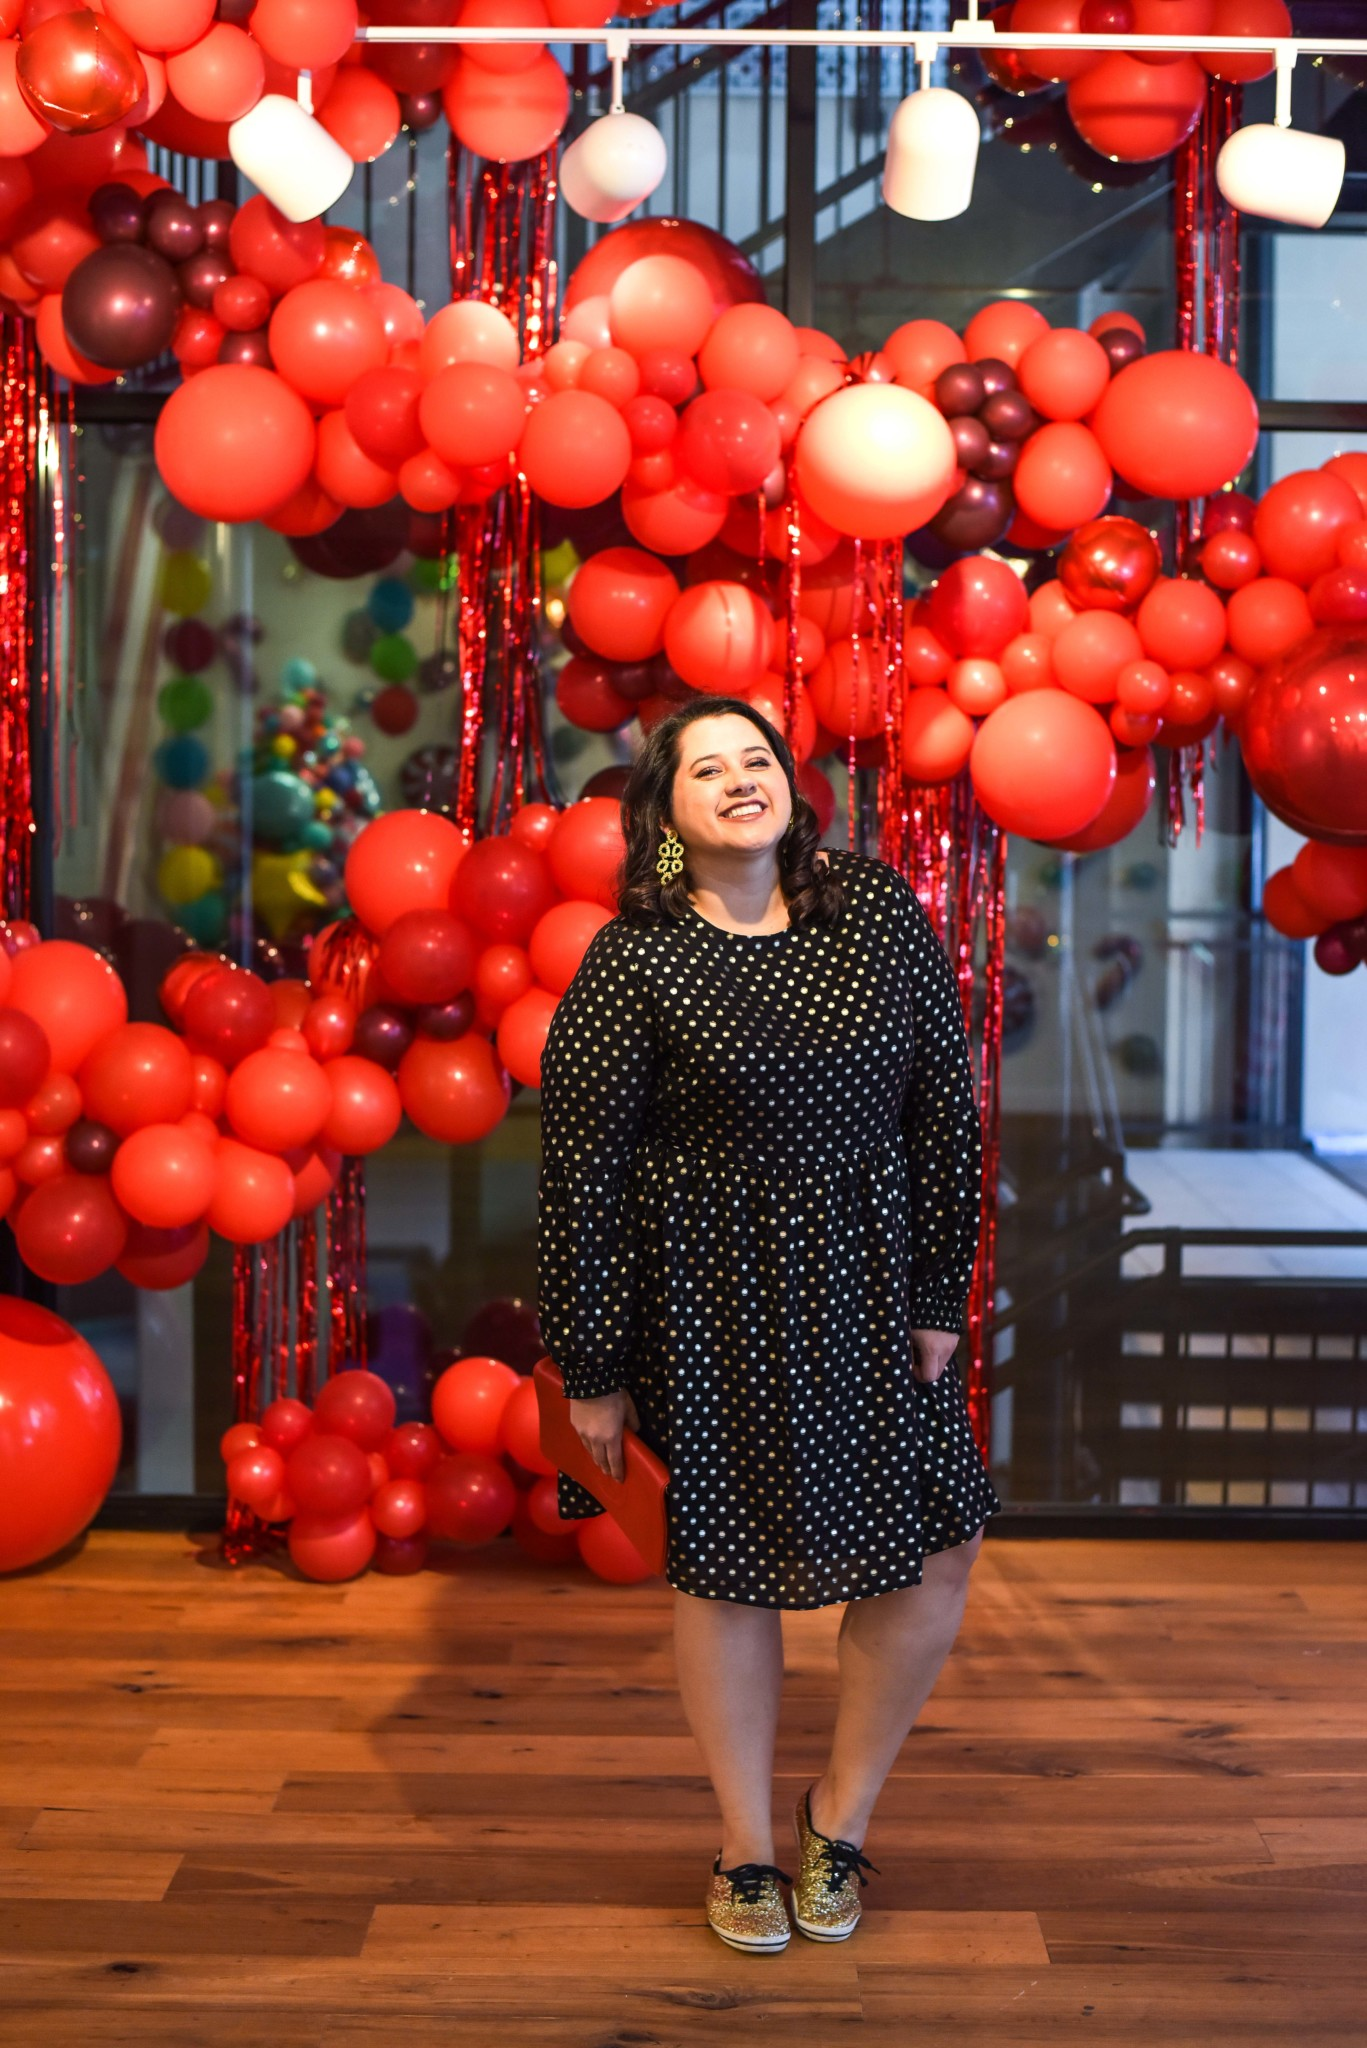 Celebrating the joys of the holidays with a little pop of red, a pair of sneakers and lots of glitter. #plussize